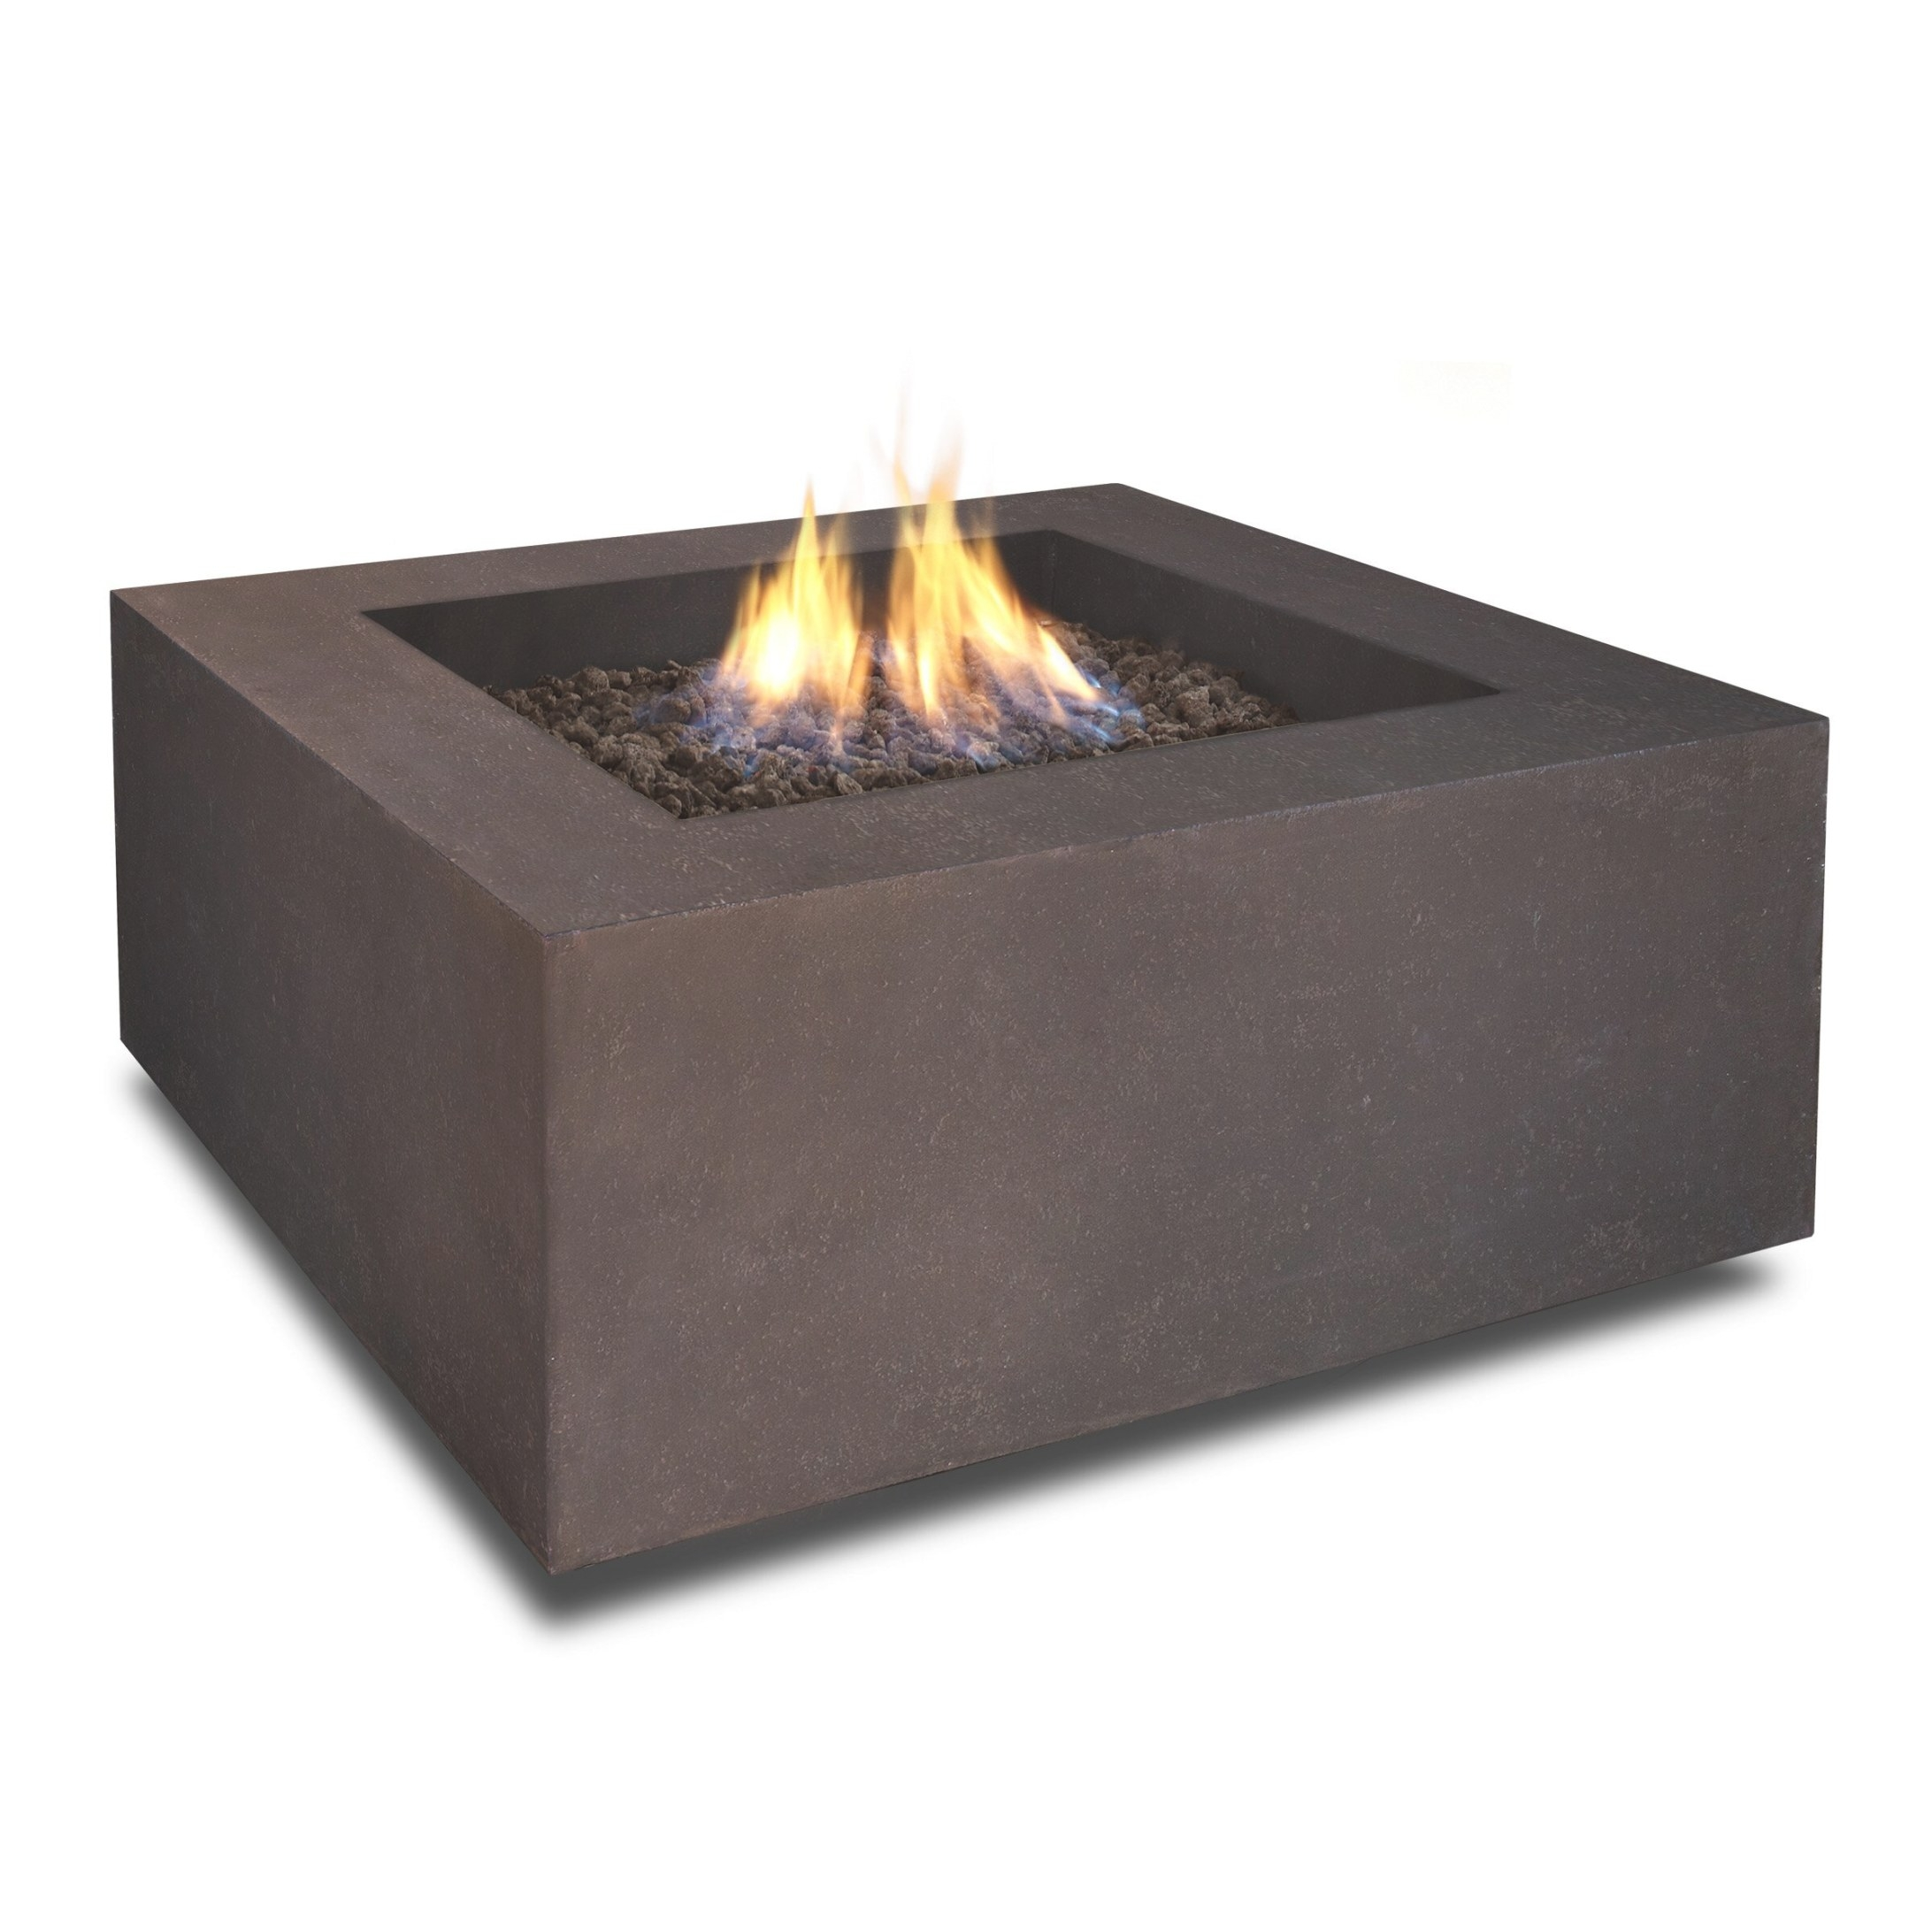 Real Flame Baltic Square Propane Fire Pit Table & Reviews intended for Propane Fire Pit Table